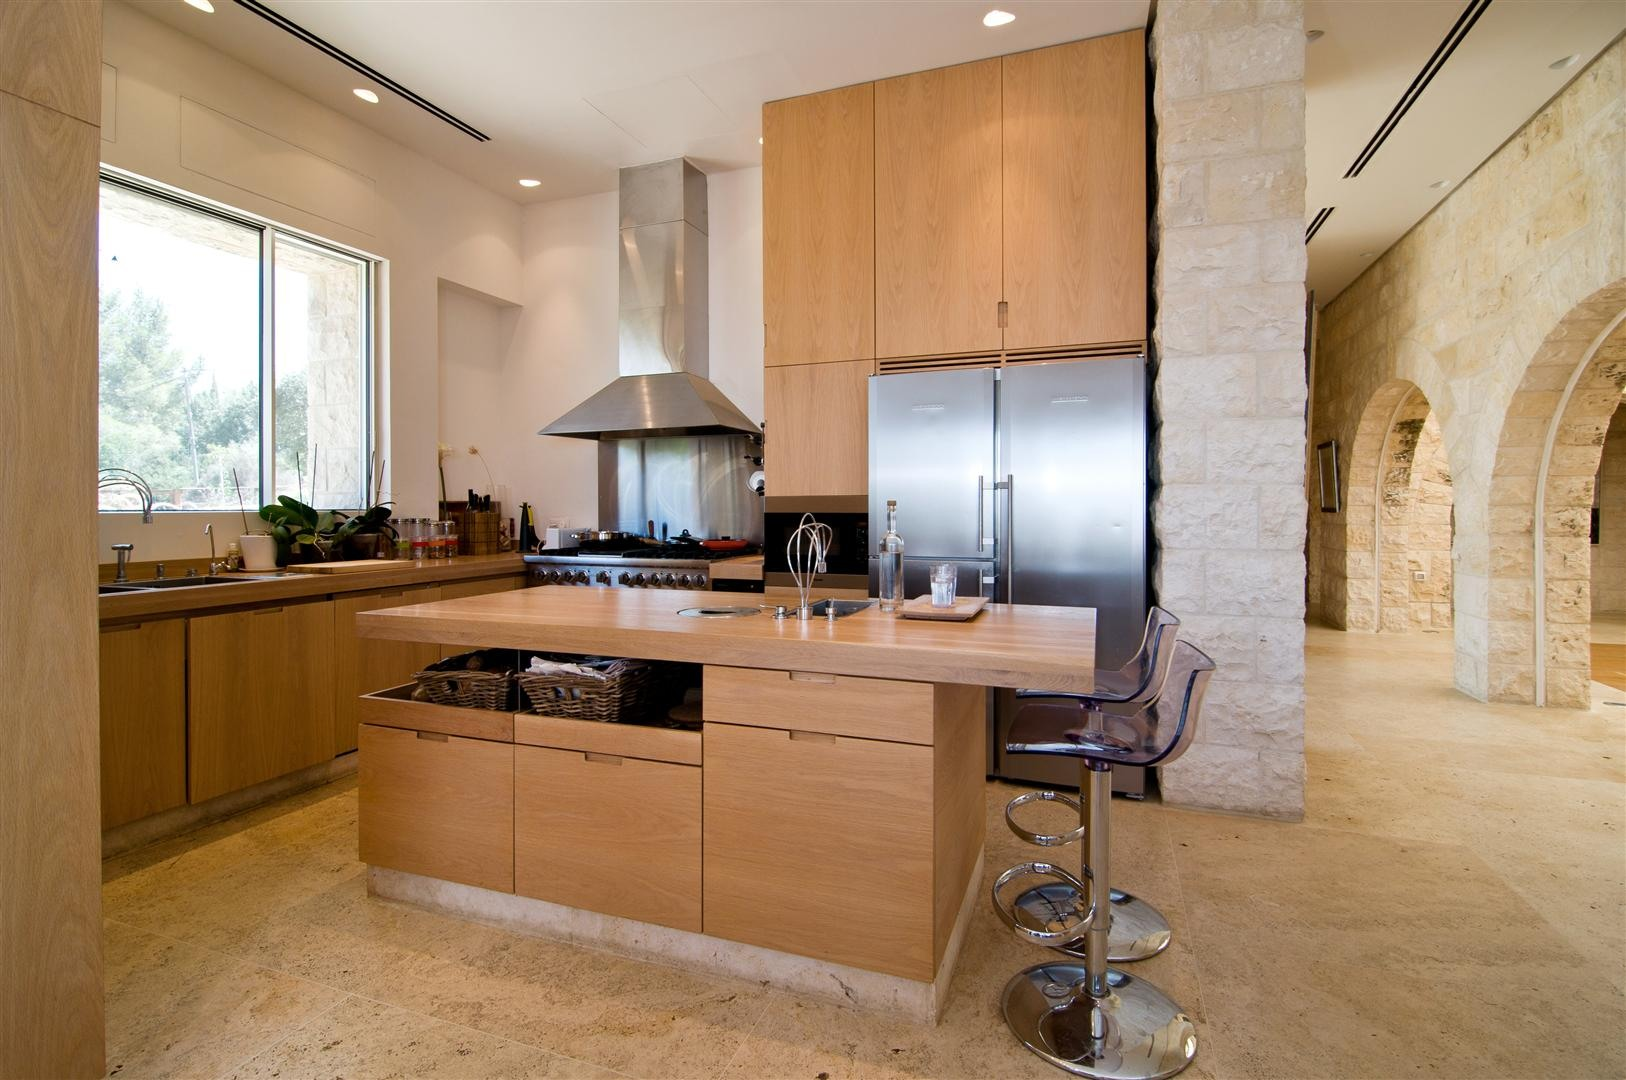 Breakfast Bar, Kitchen Island, Contemporary Stone House in Jerusalem, Israel